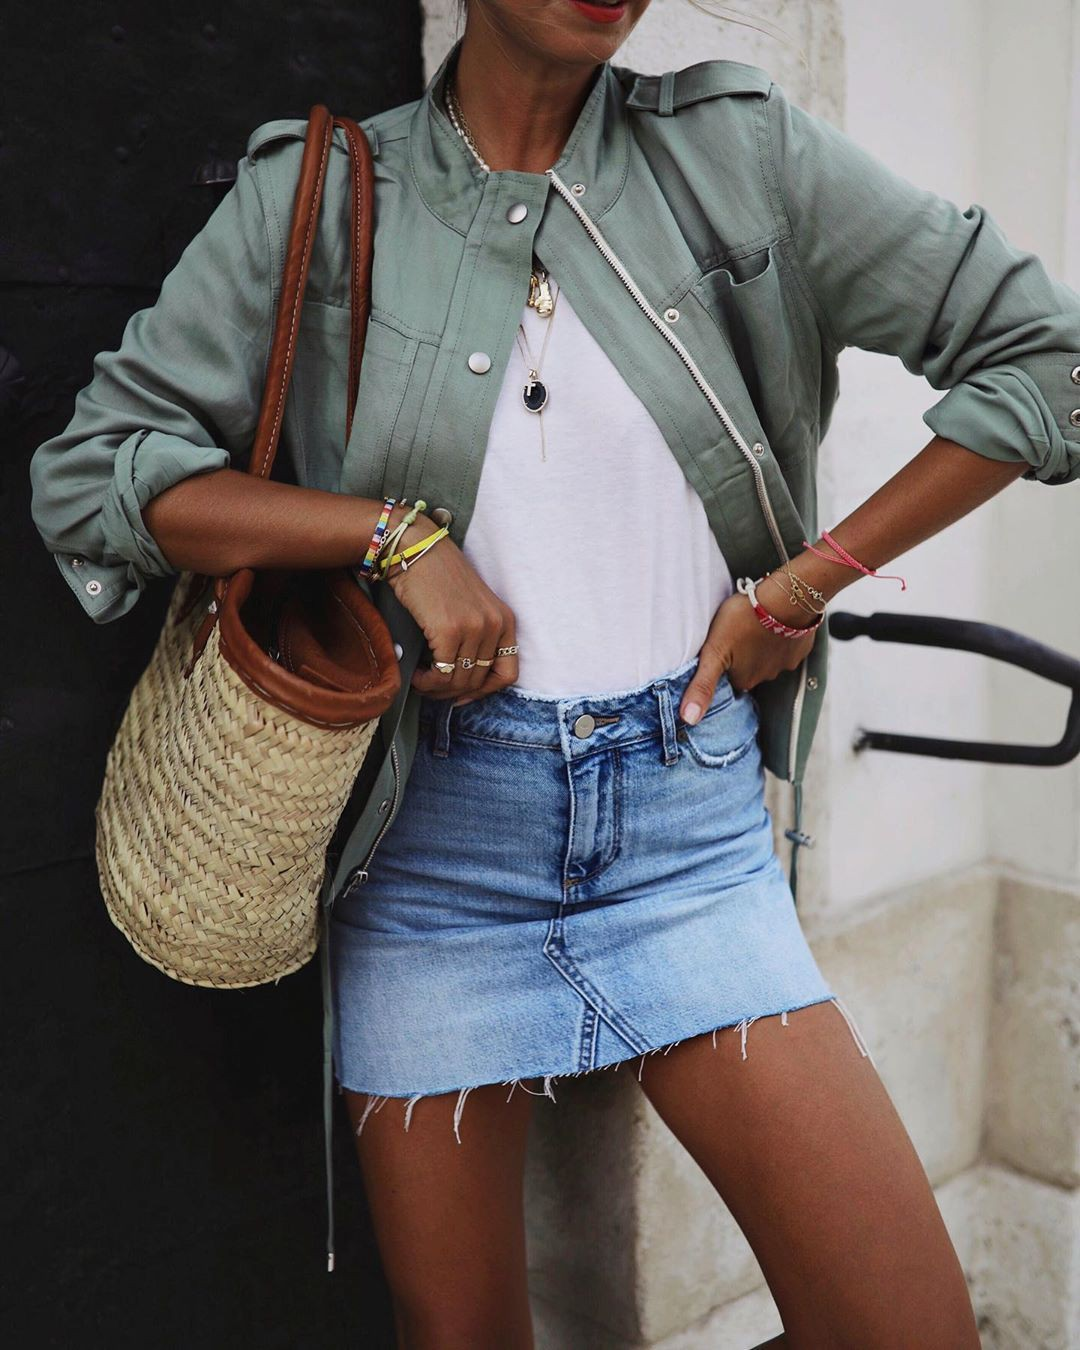 Classy outfit with miniskirt, jacket, shorts